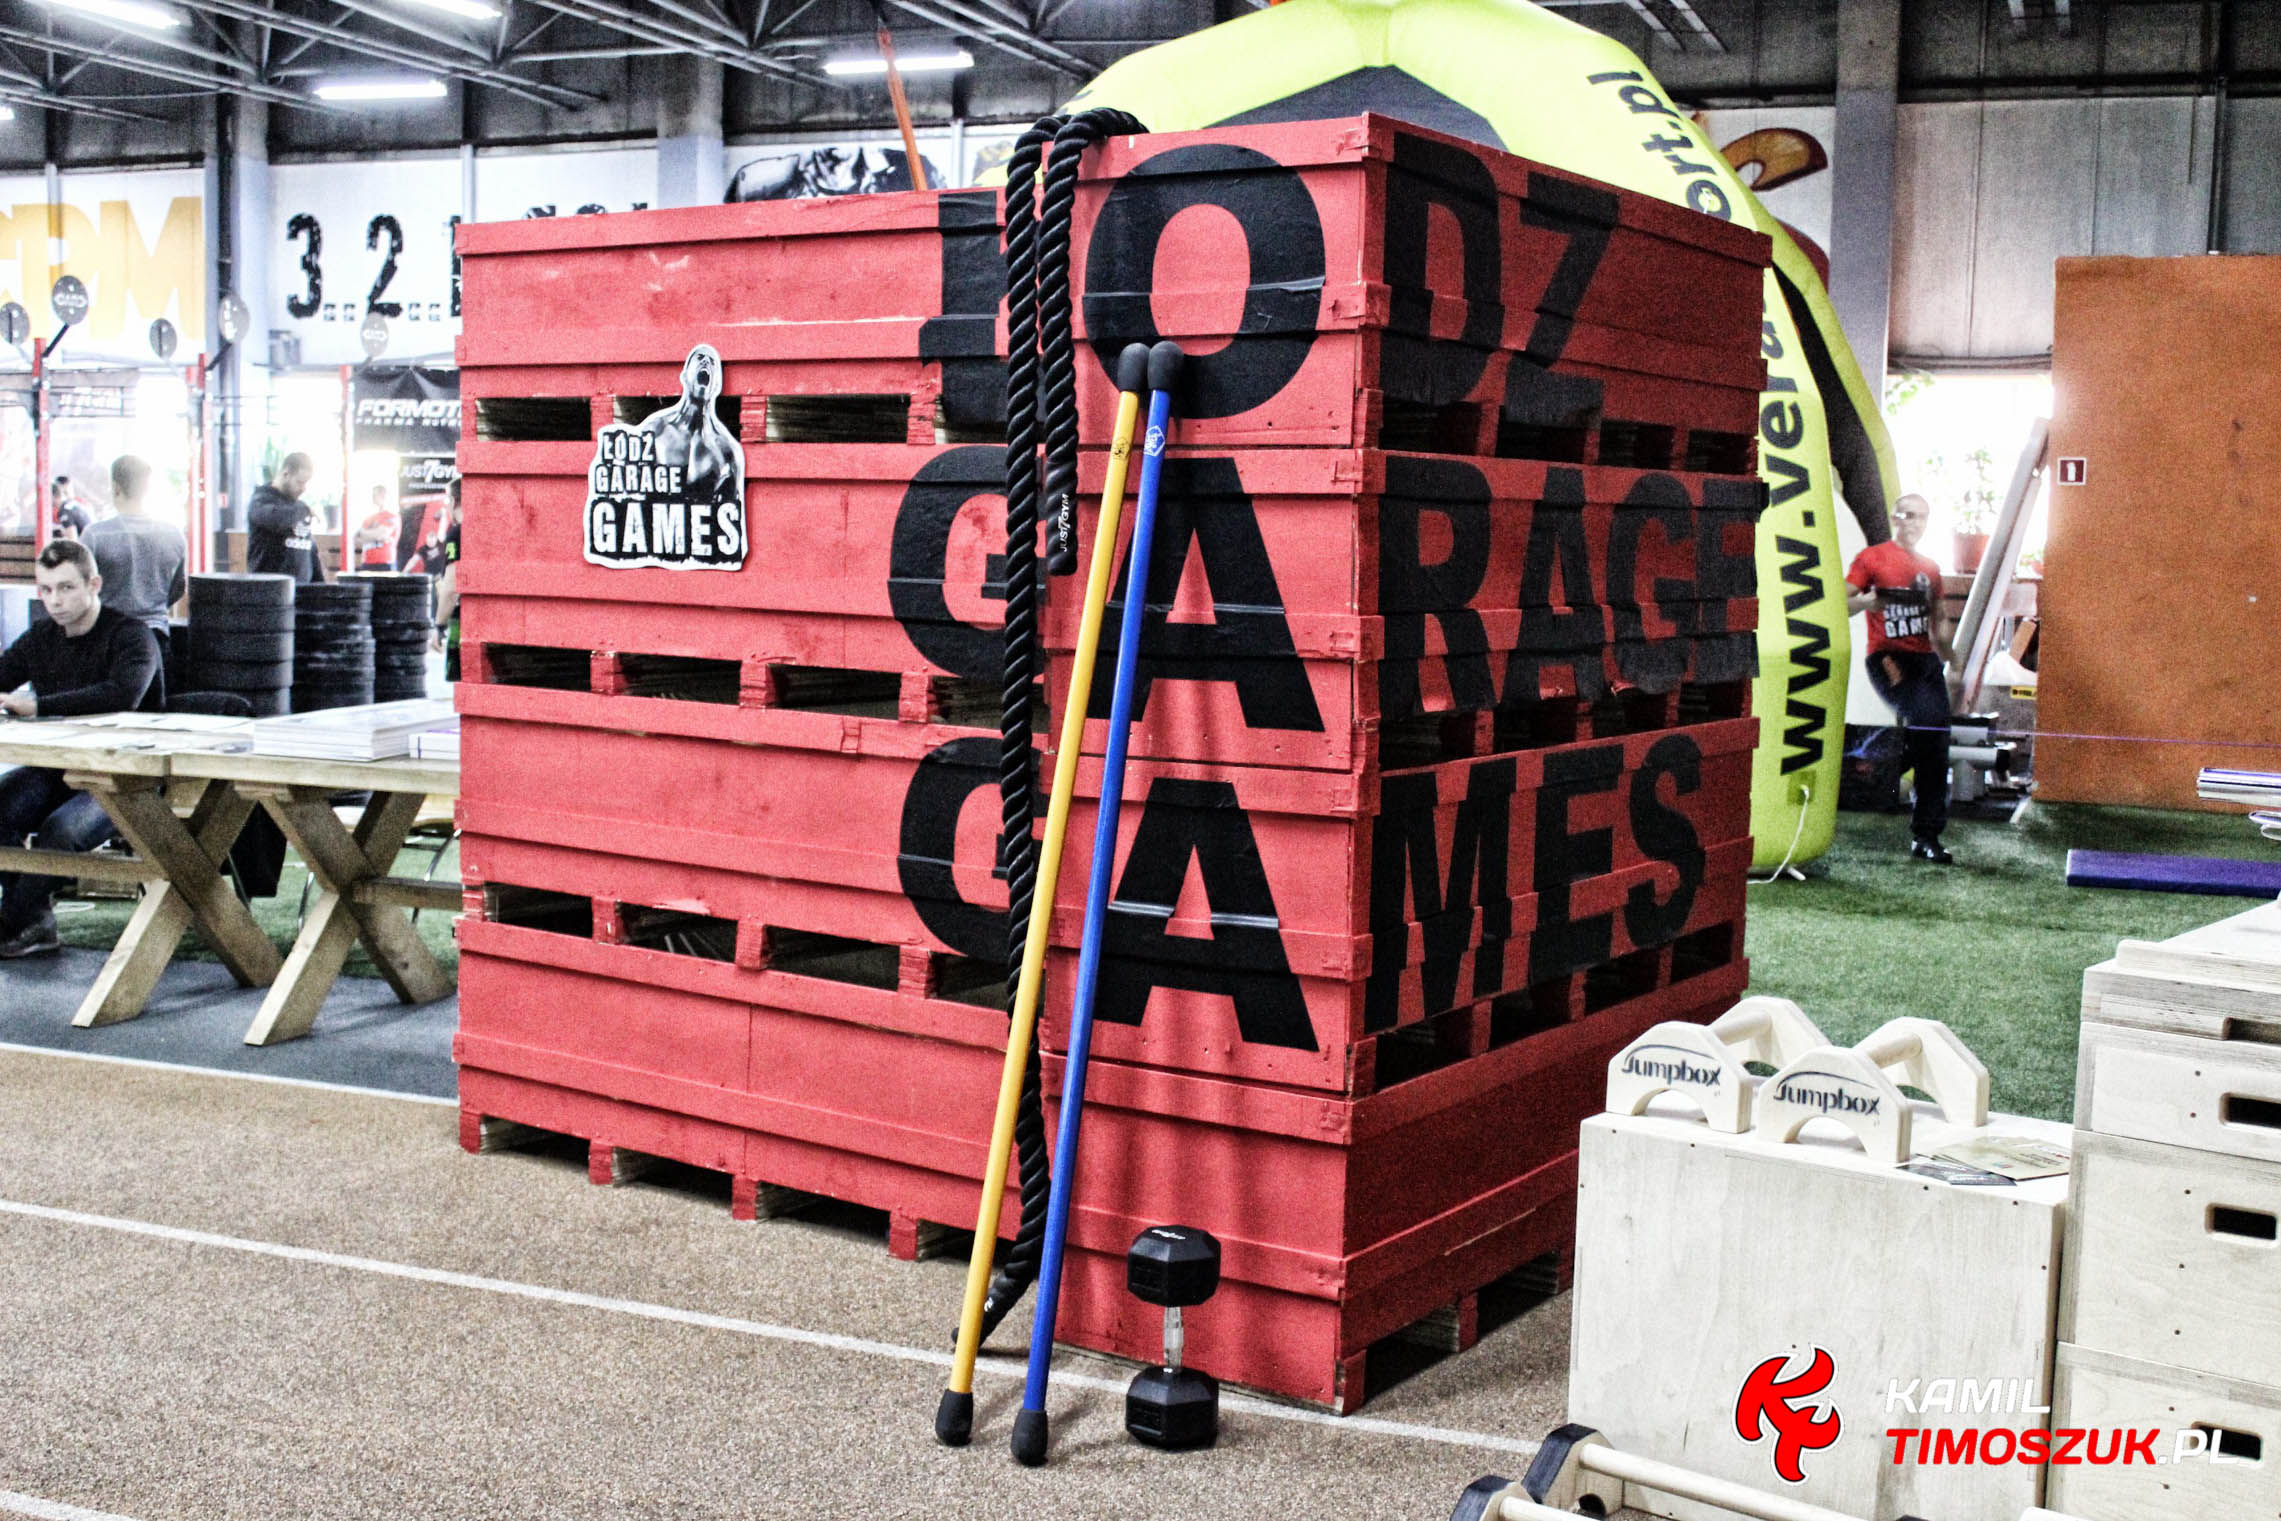 lodz-garage-games-2017-3